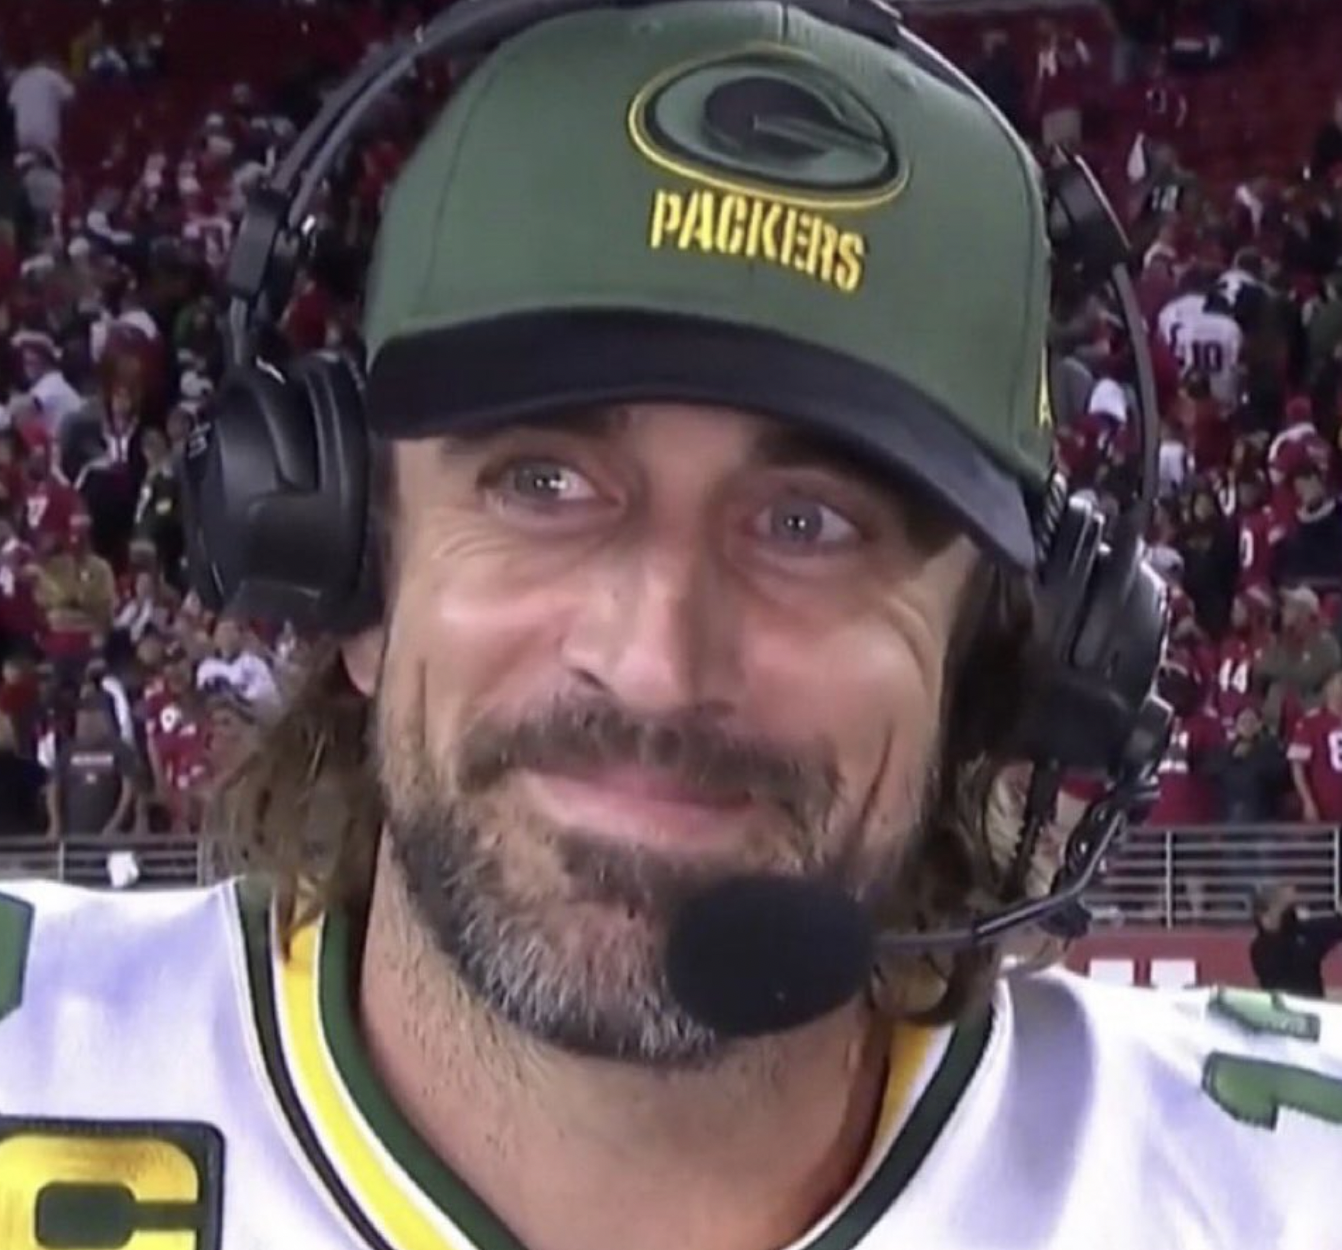 To The Dismay Of Many Sad People, It Appears That Aaron Rodgers Still Cares About Winning Football Games